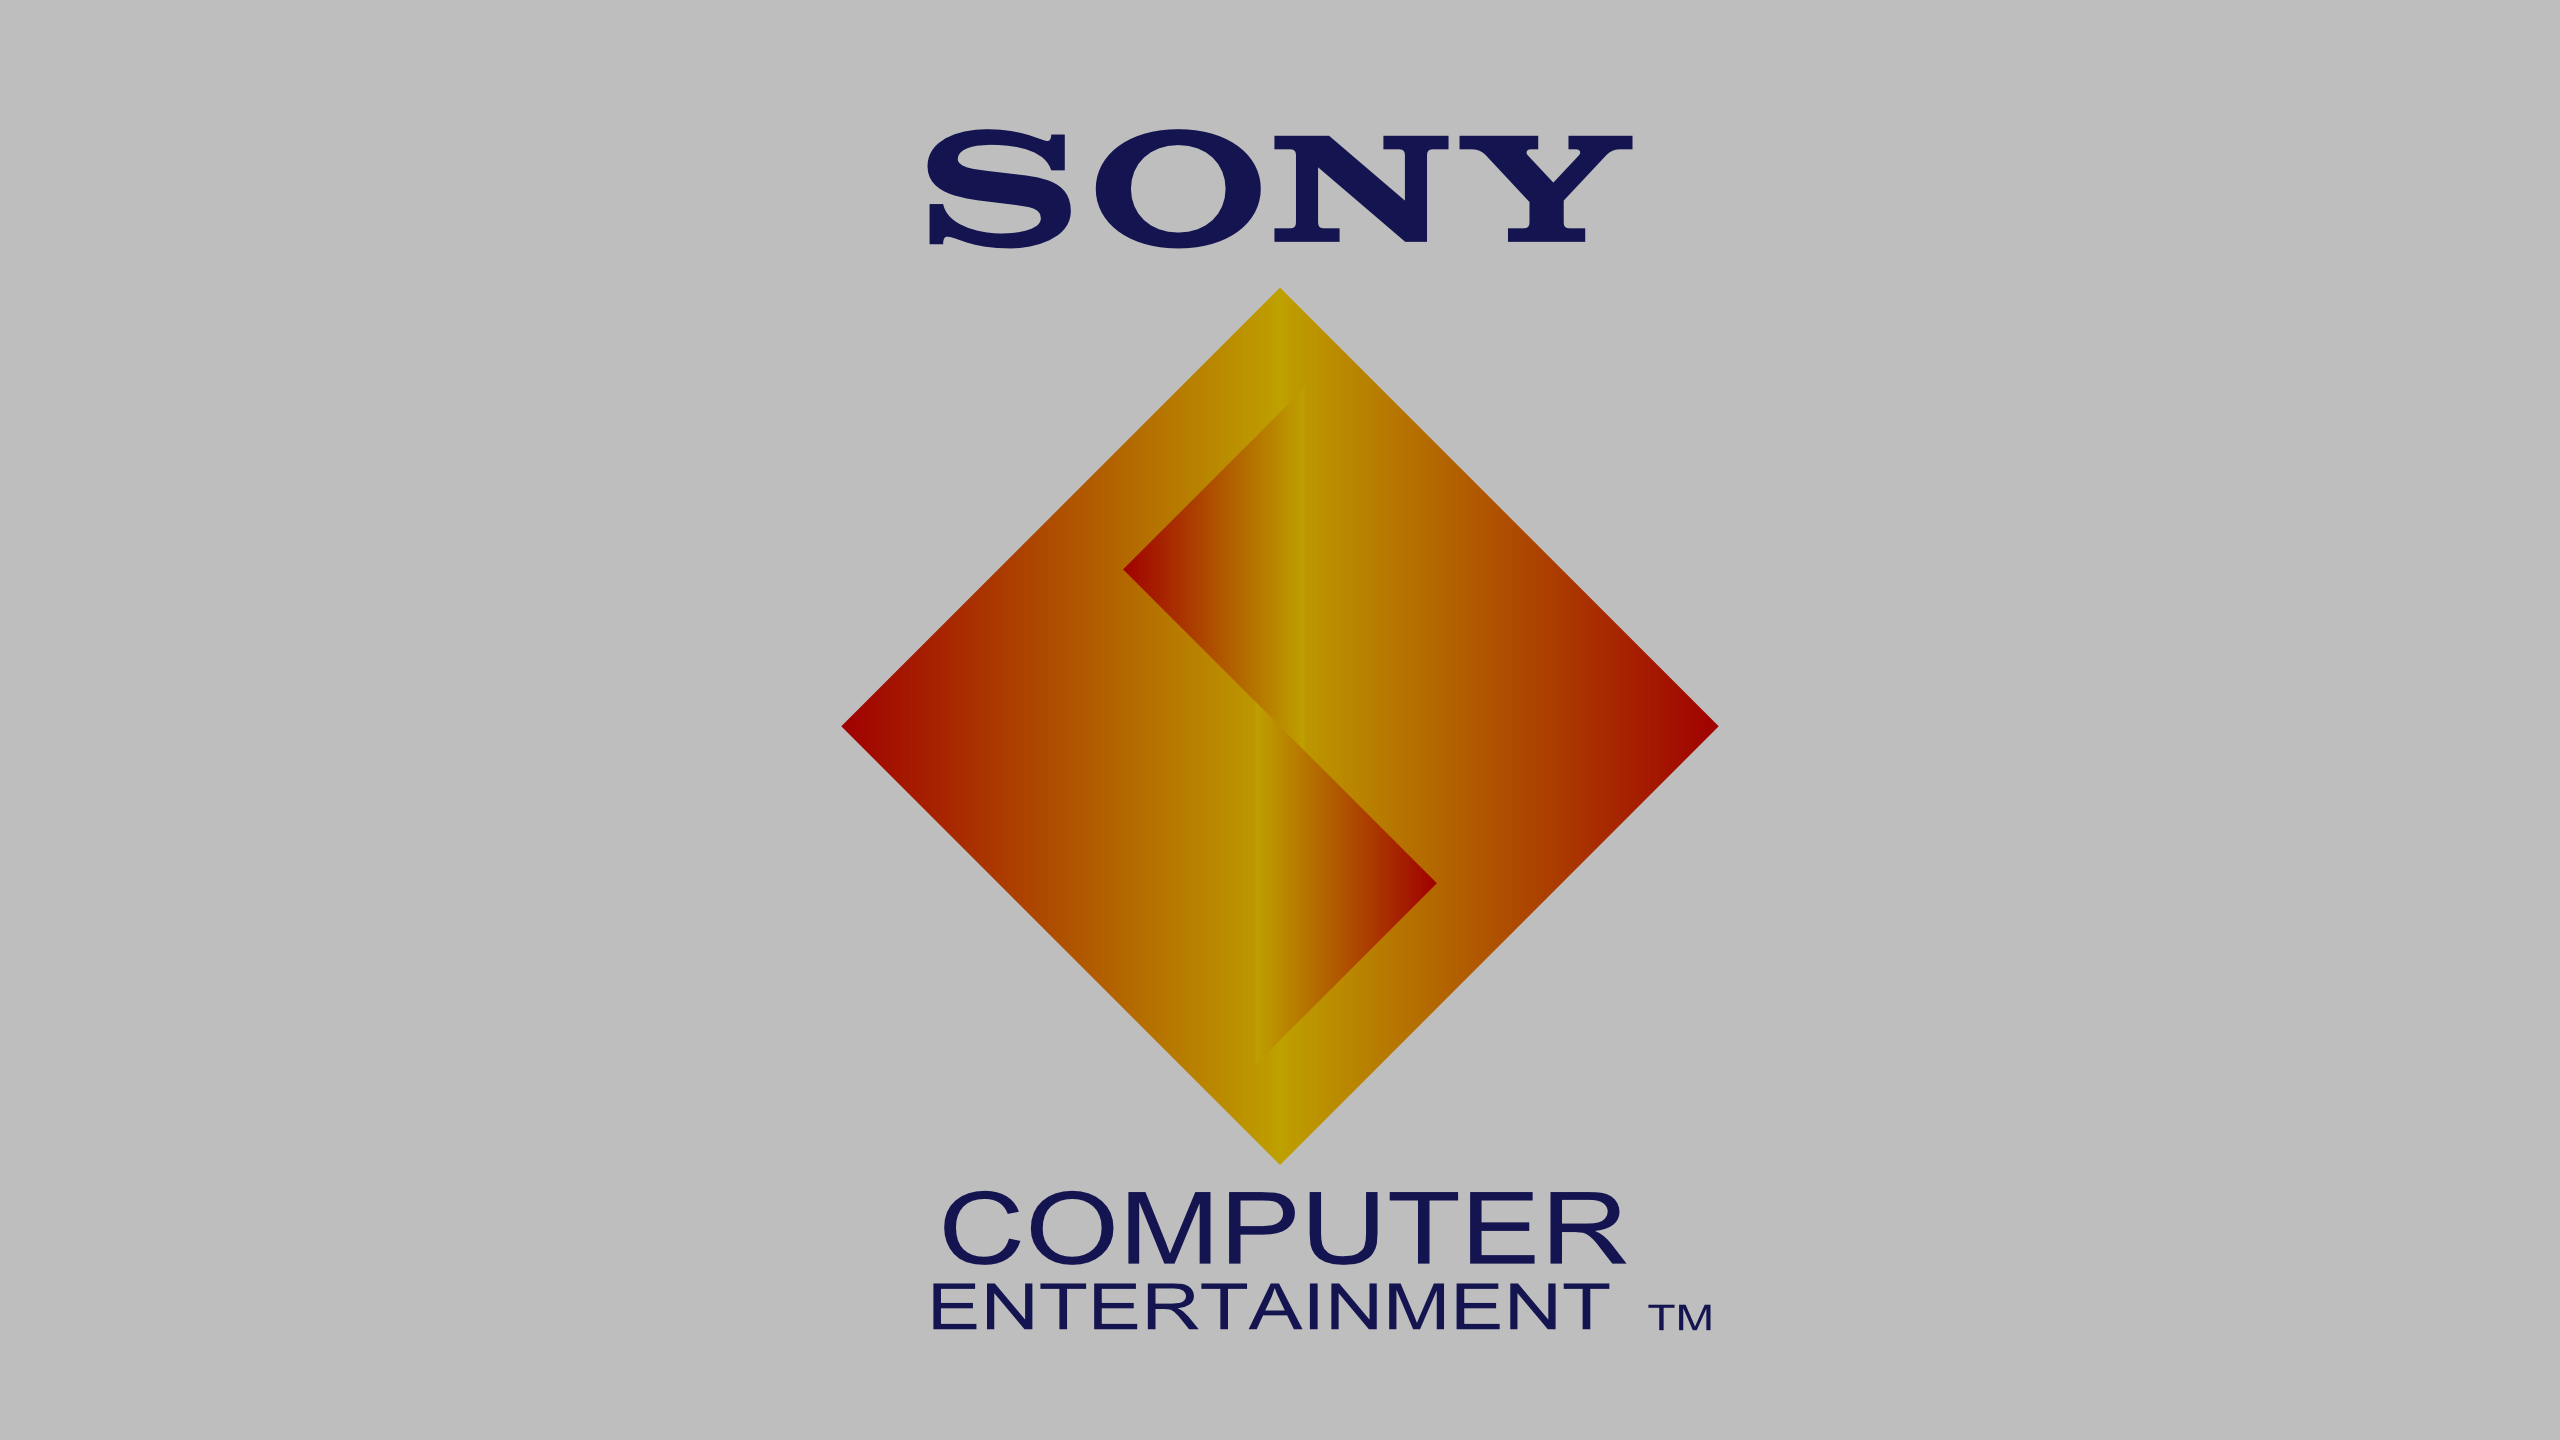 Ps1 Wallpapers Top Free Ps1 Backgrounds Wallpaperaccess